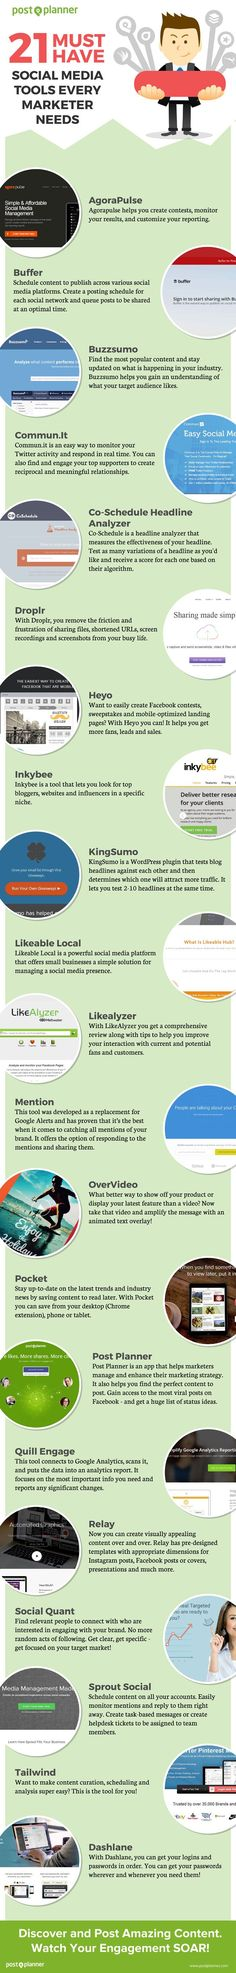 21 Vital Social Media Tools for Marketers